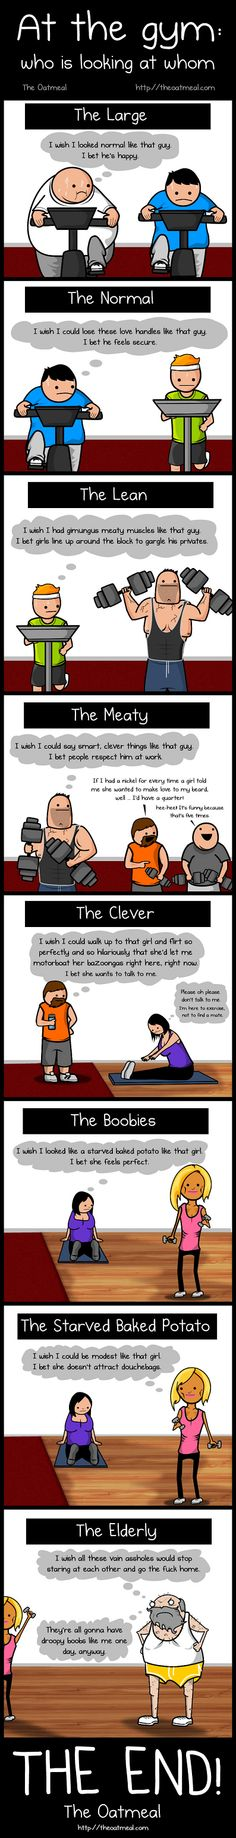 At the Gym: Who Is Looking at Whom | This is hilarious!